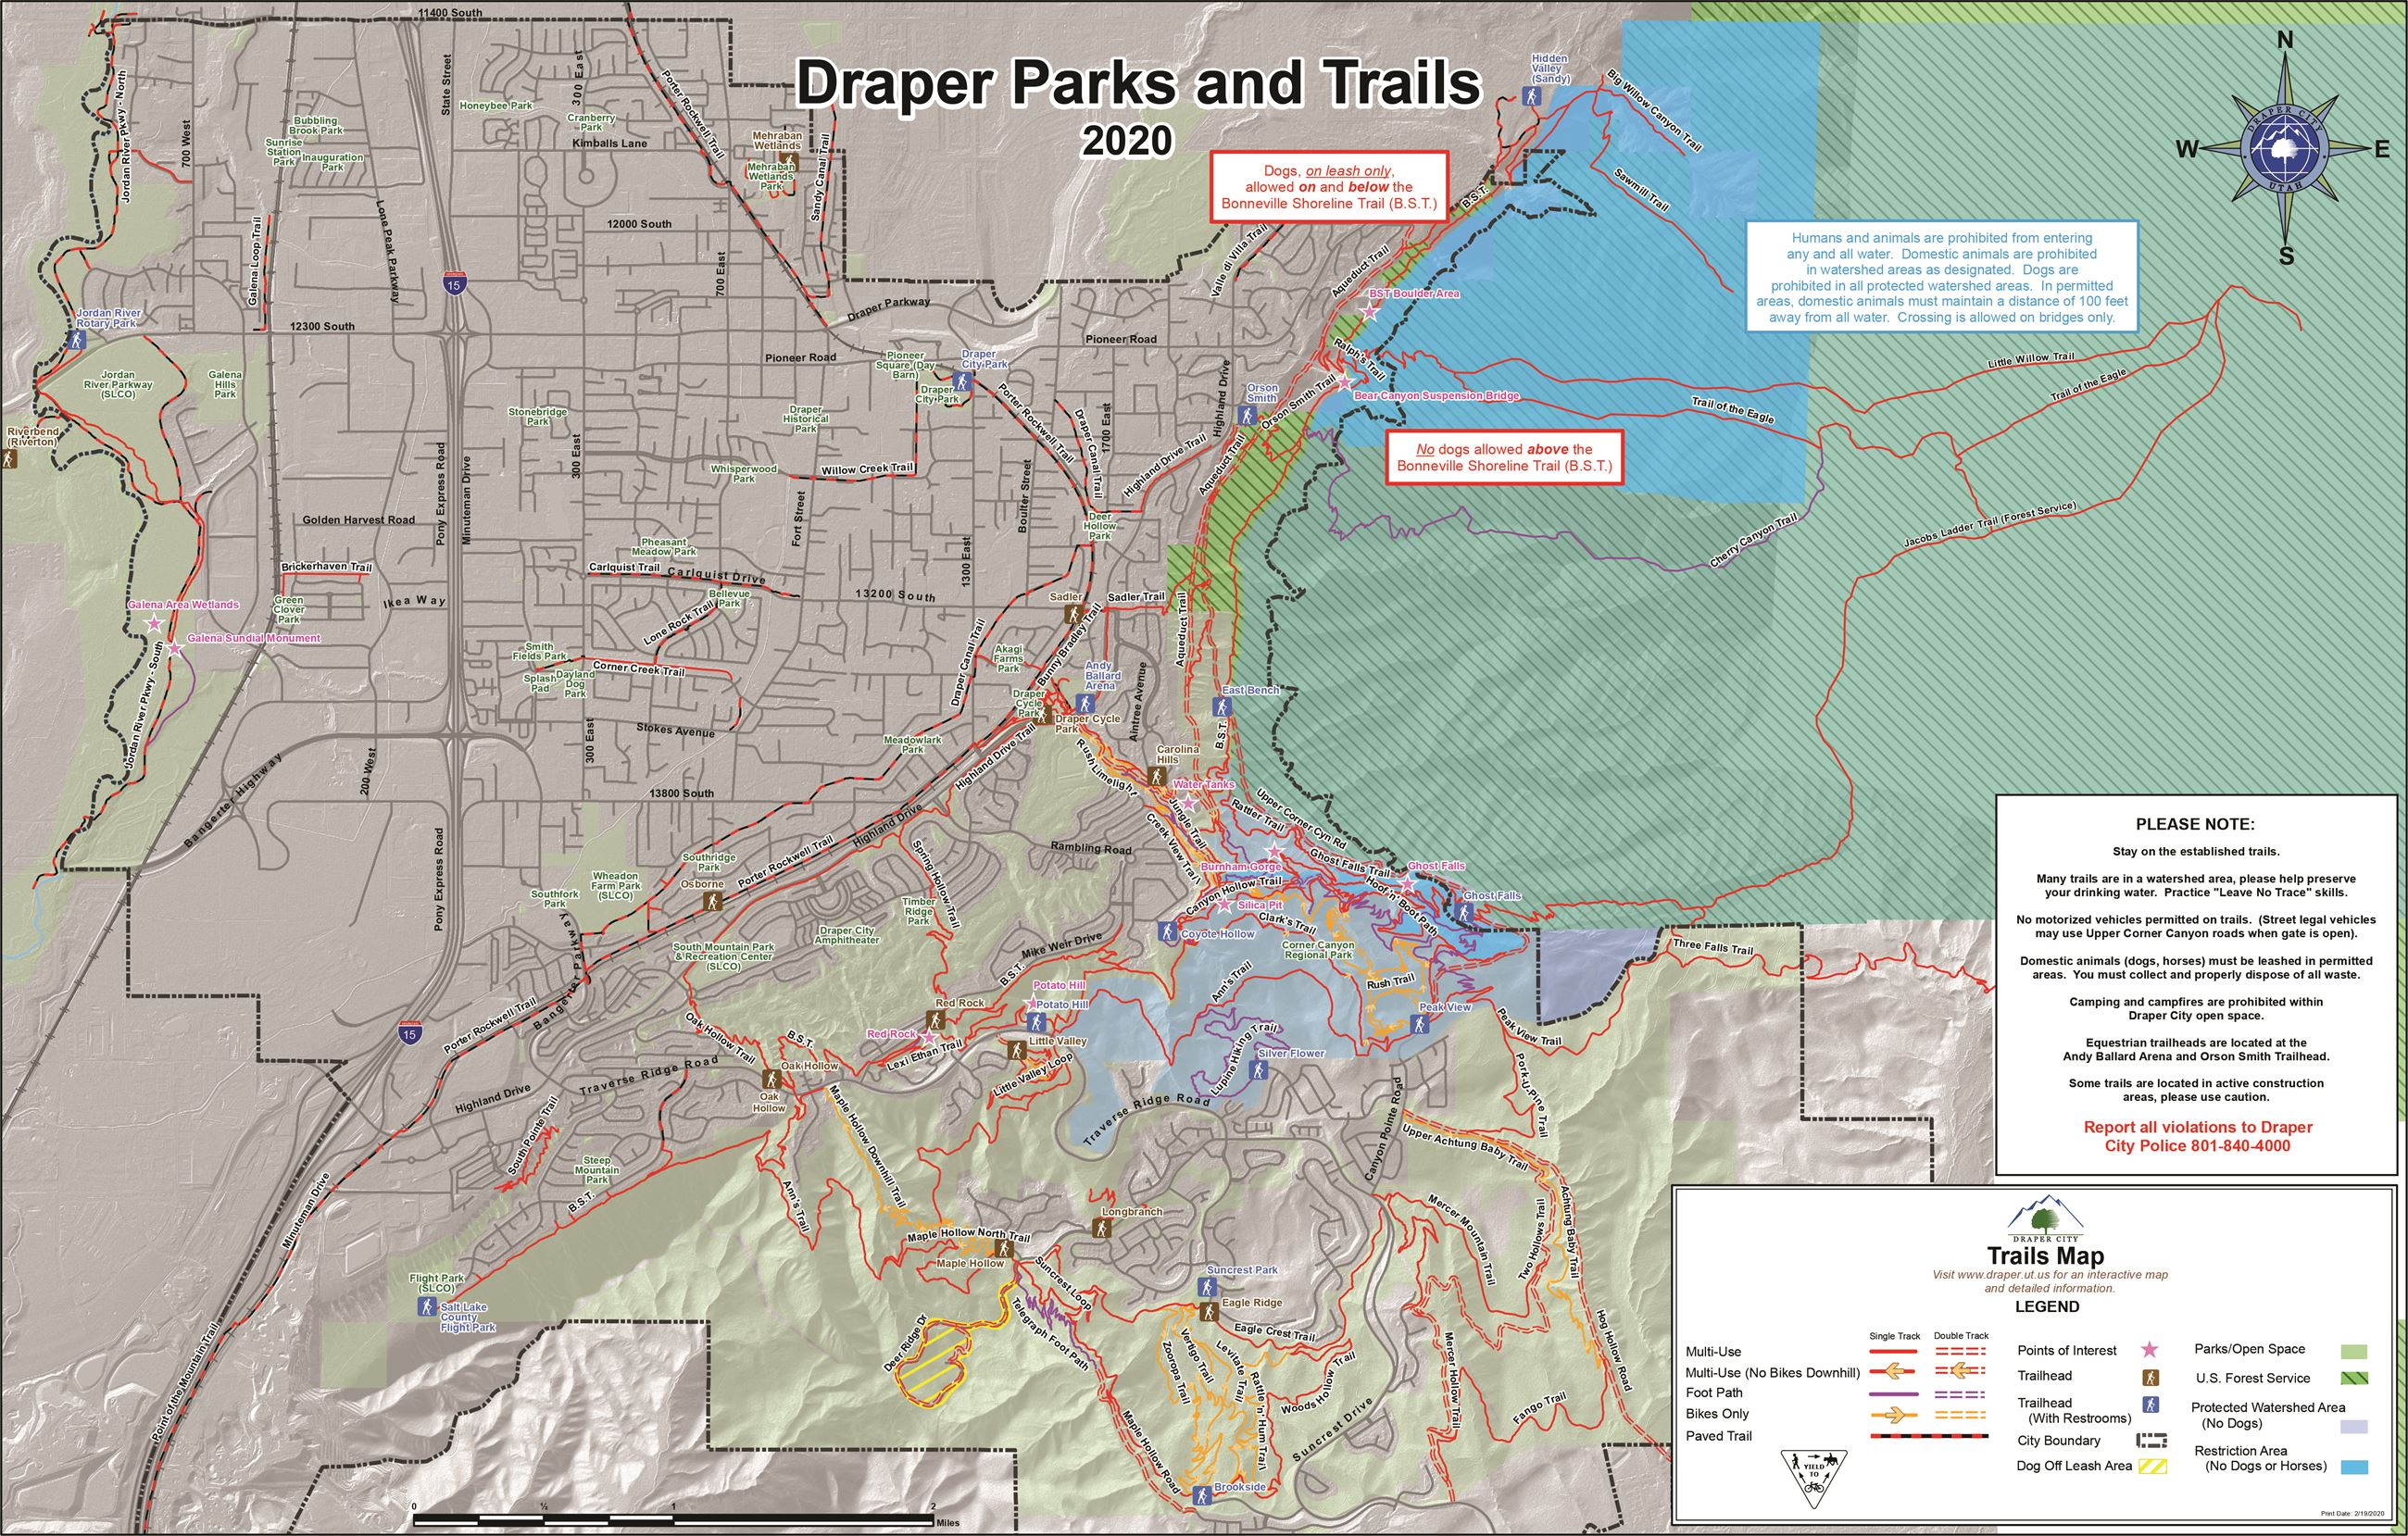 Draper Parks and Trails Map 2020